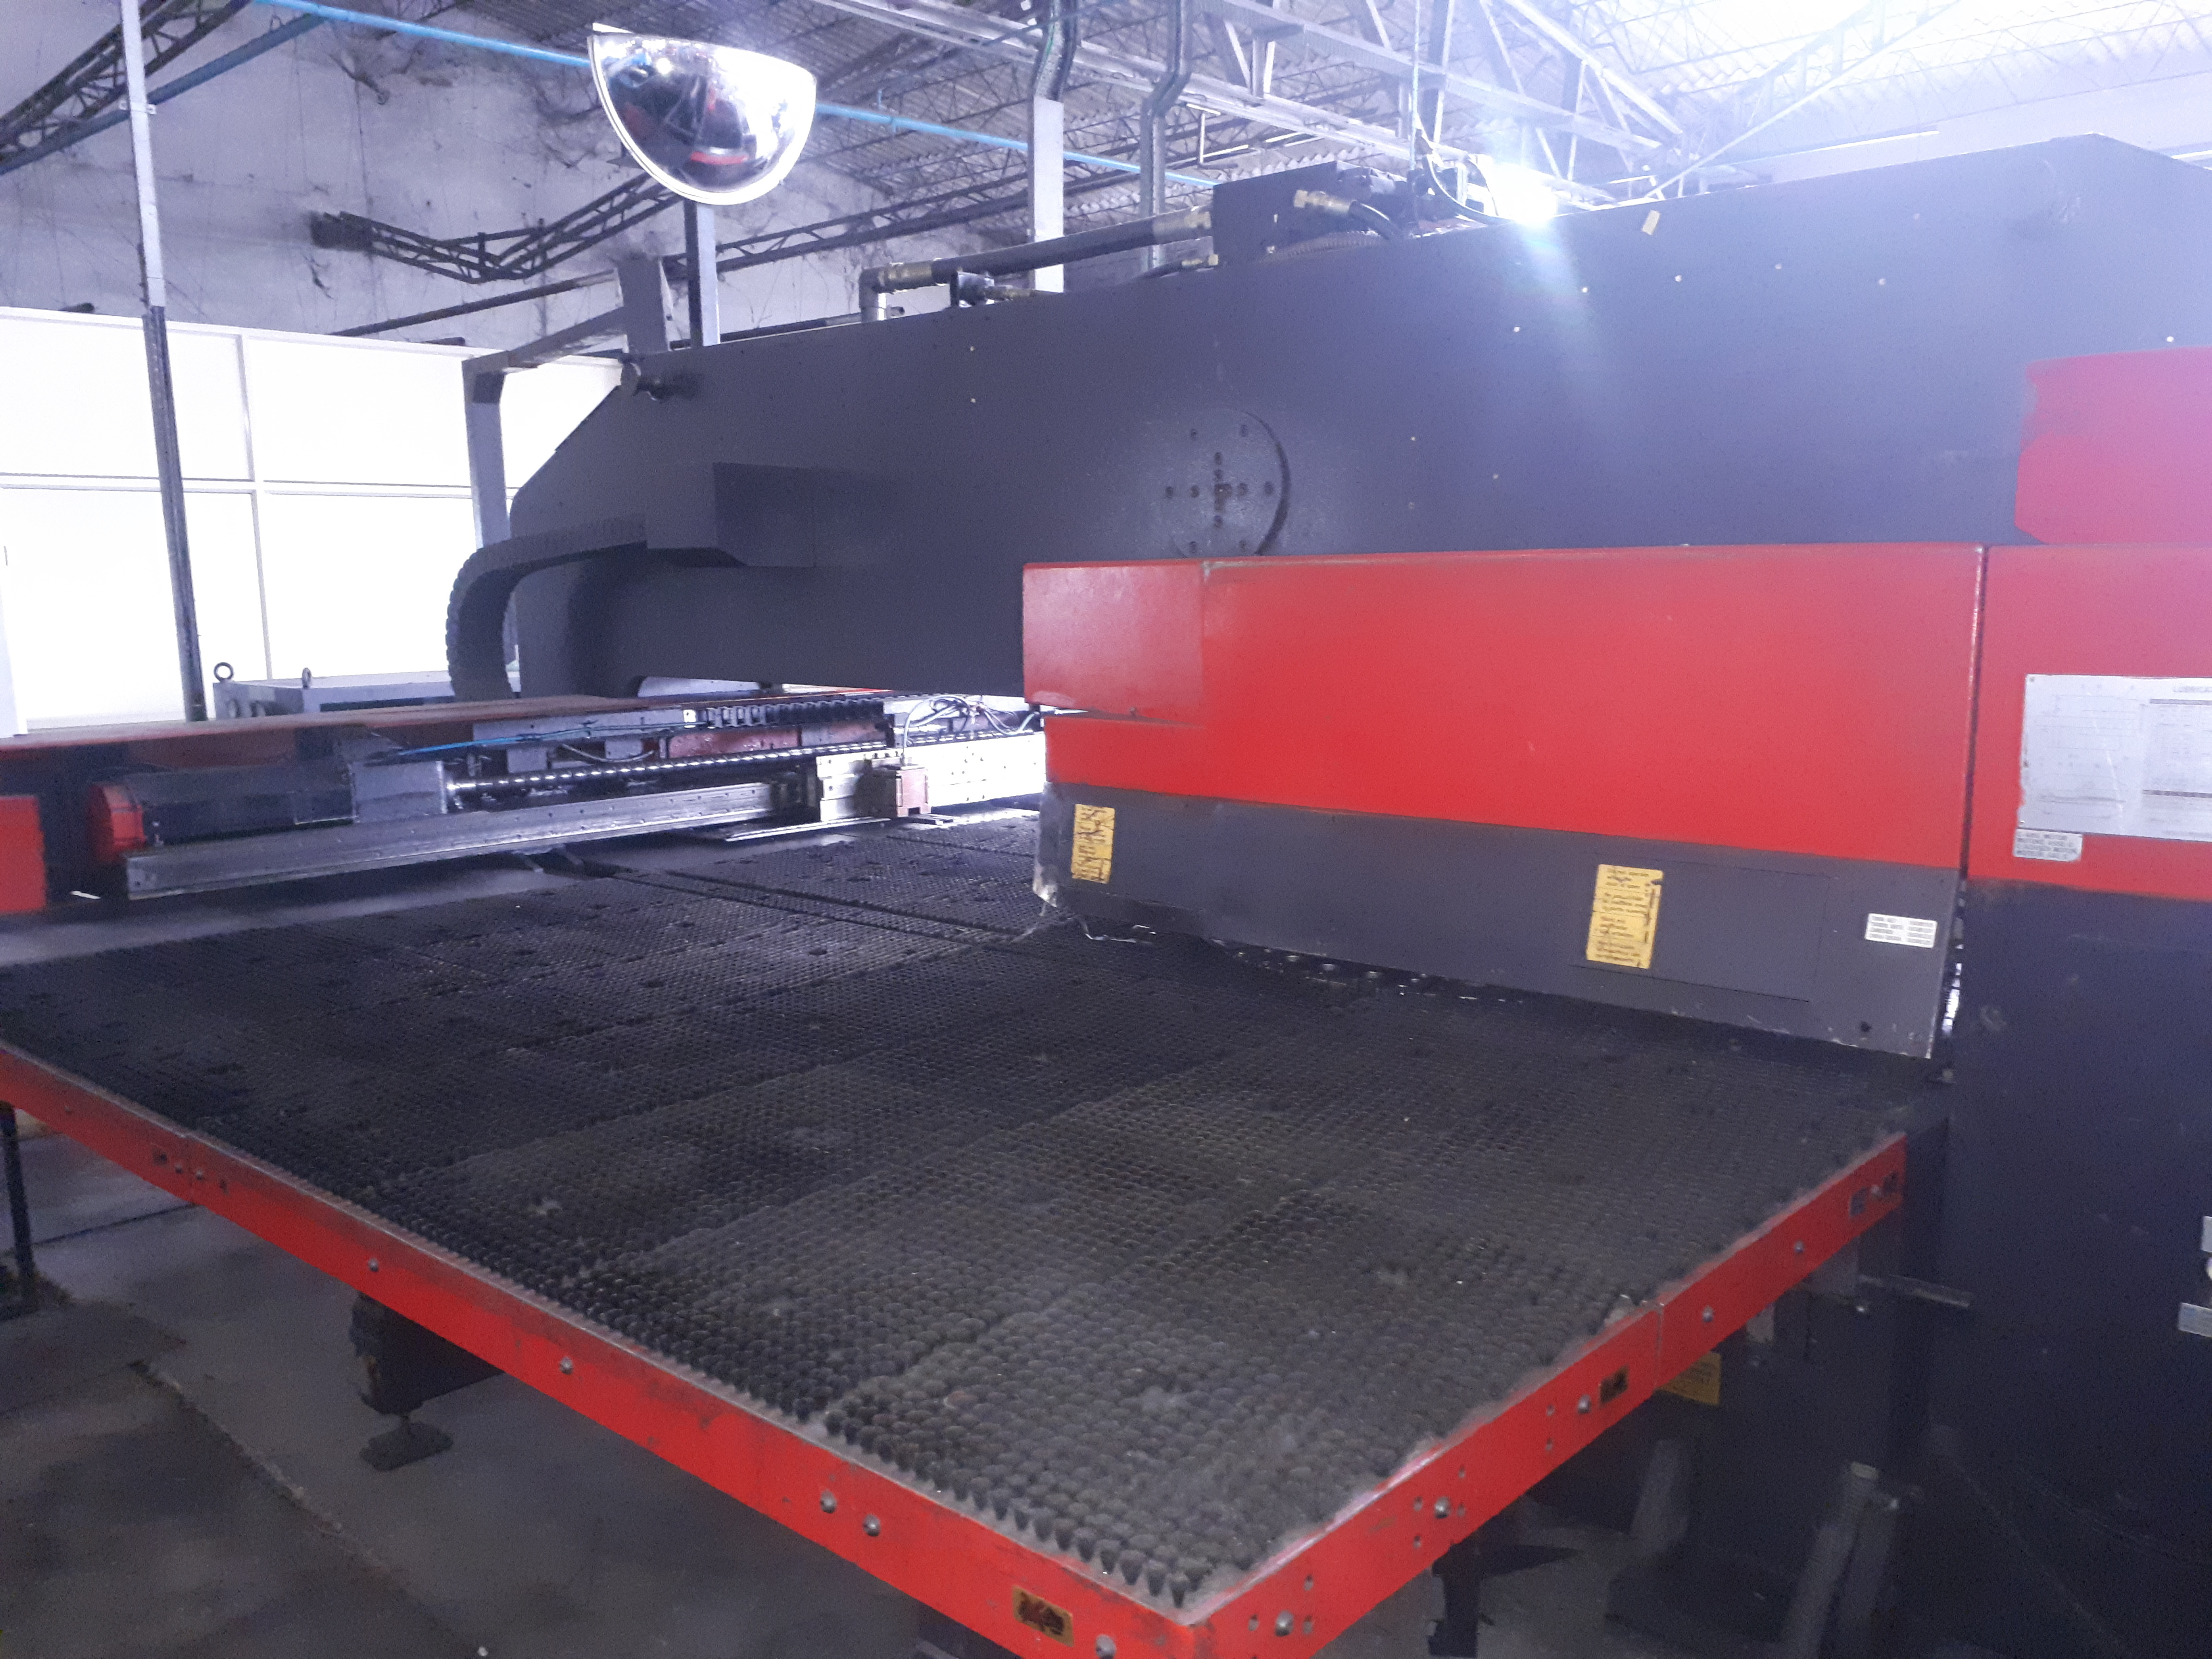 CNC Turret Punch Press Supplier,Distributor and Trading Company in